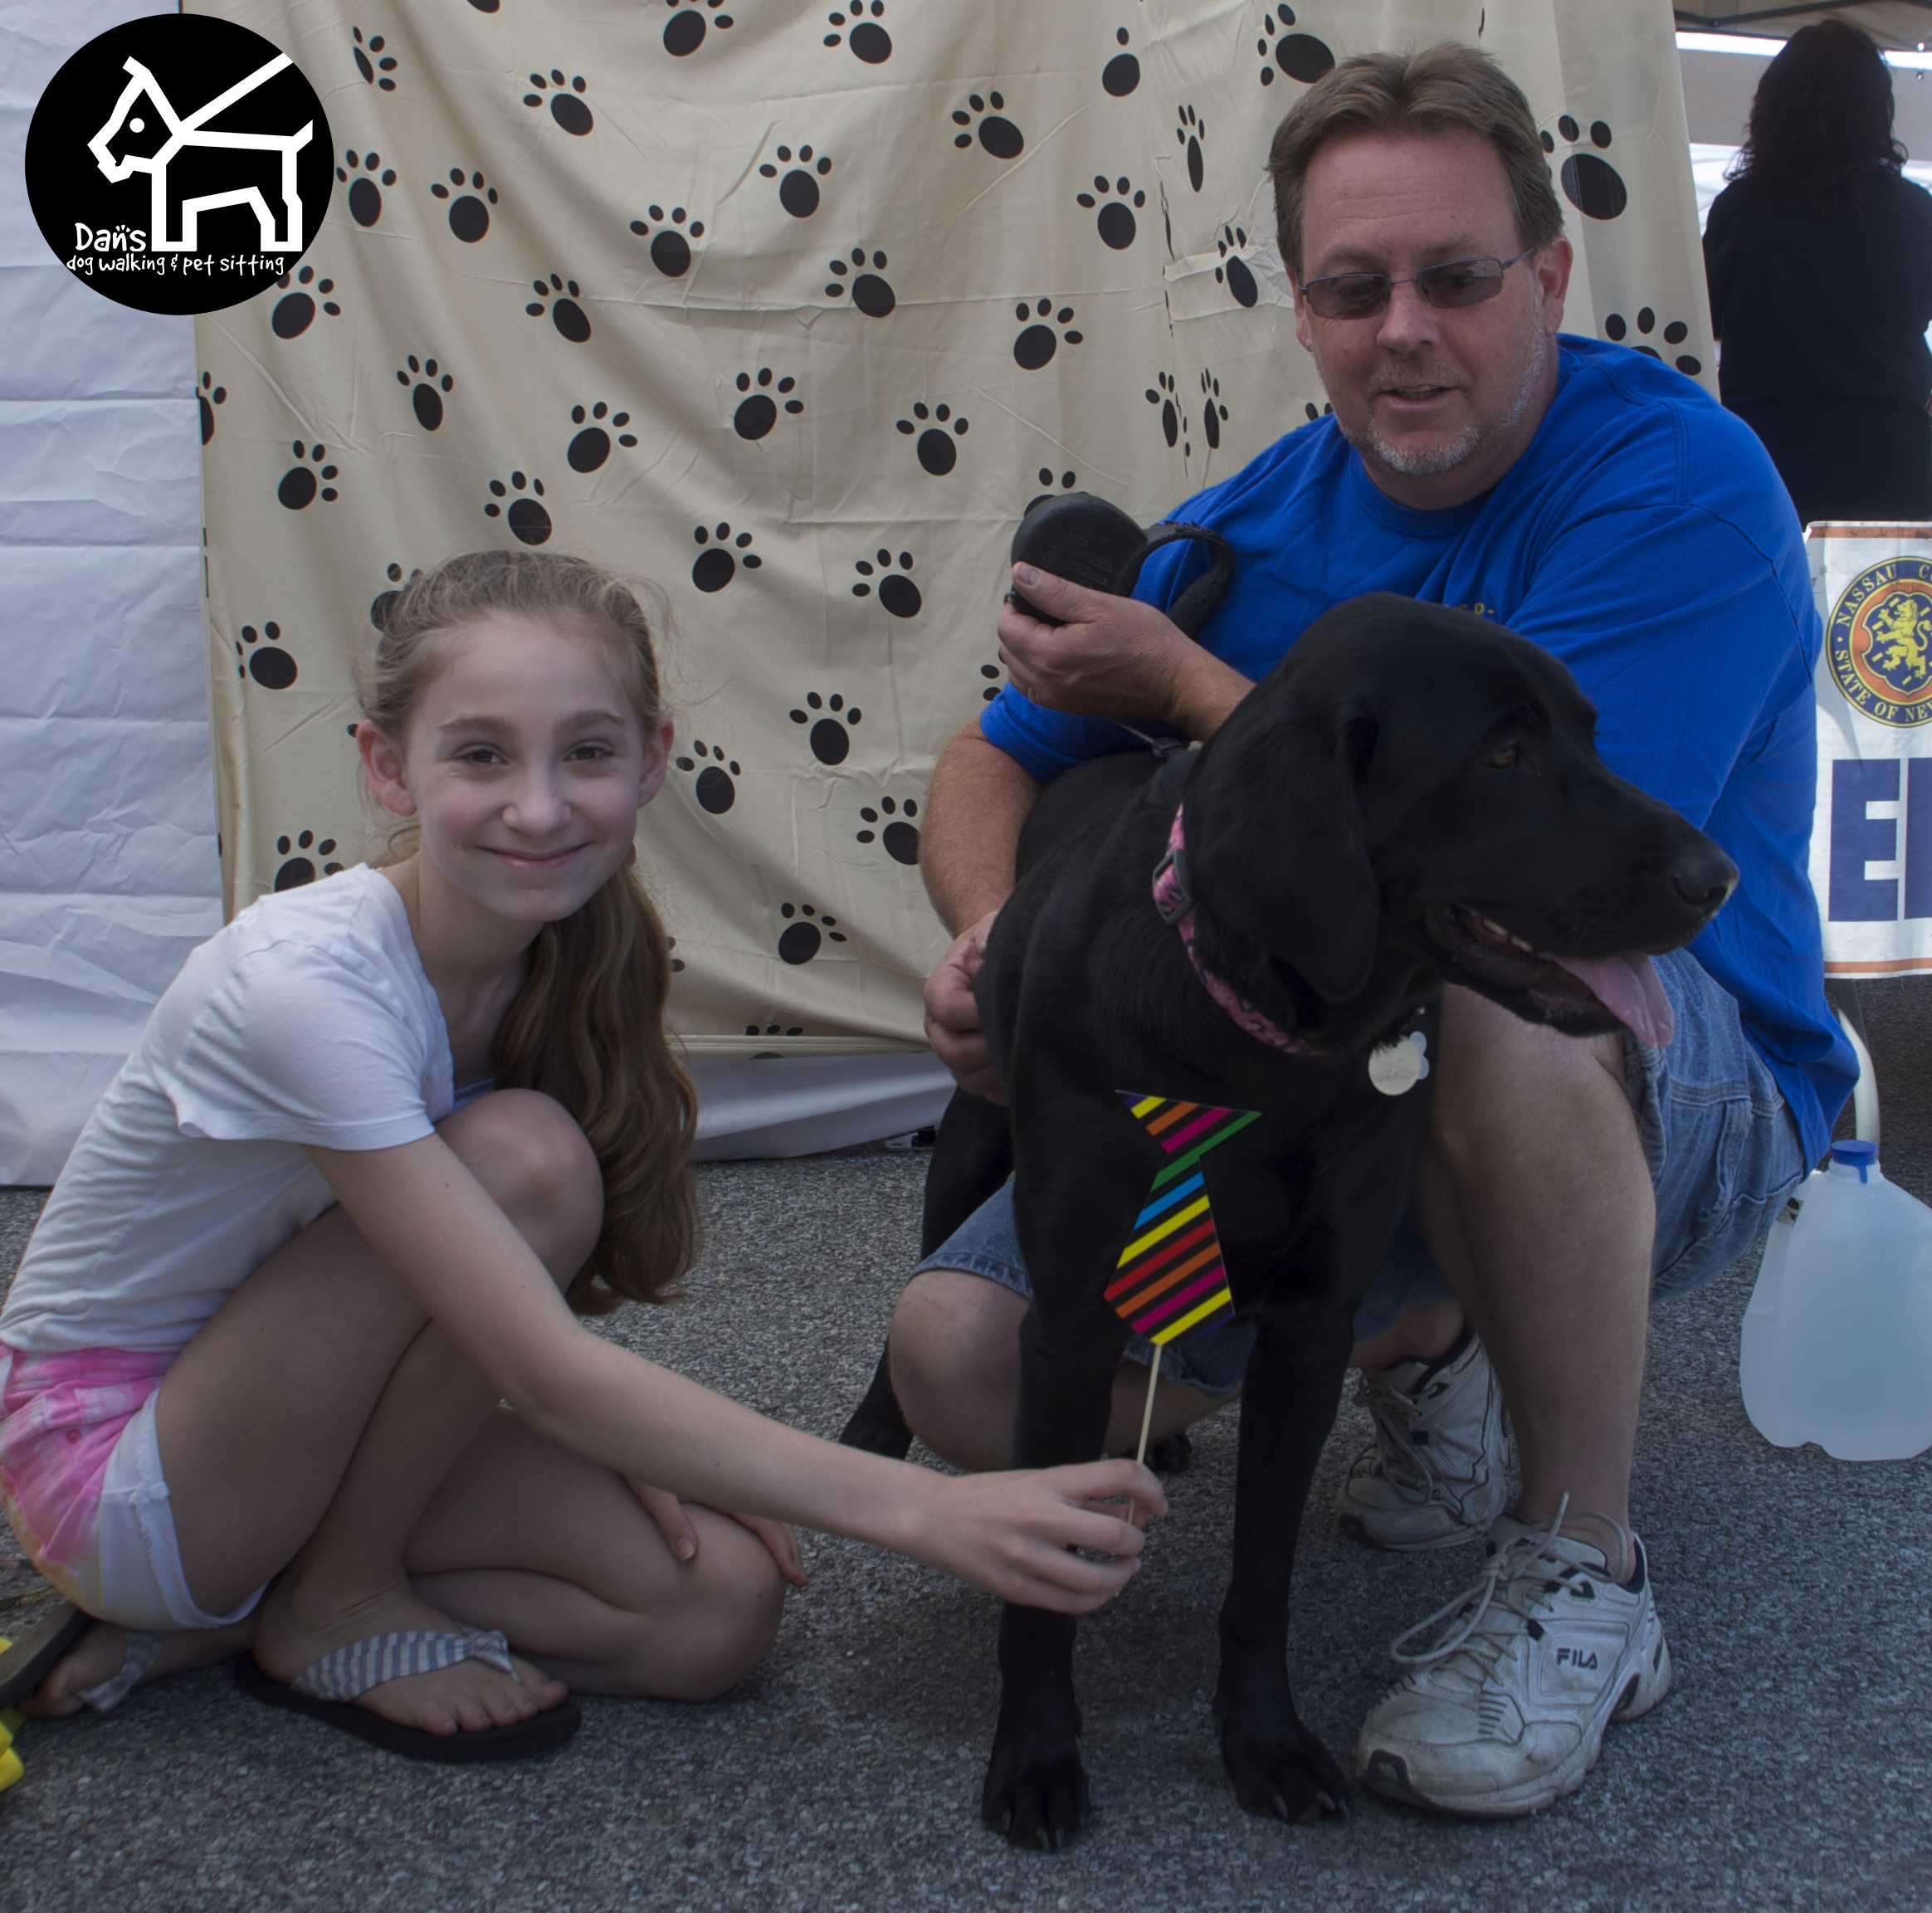 Great Family Photo at Dan's Dog Walking and Pet Sitting Doggie Photo Booth at Harbor Fest 2015.jpg